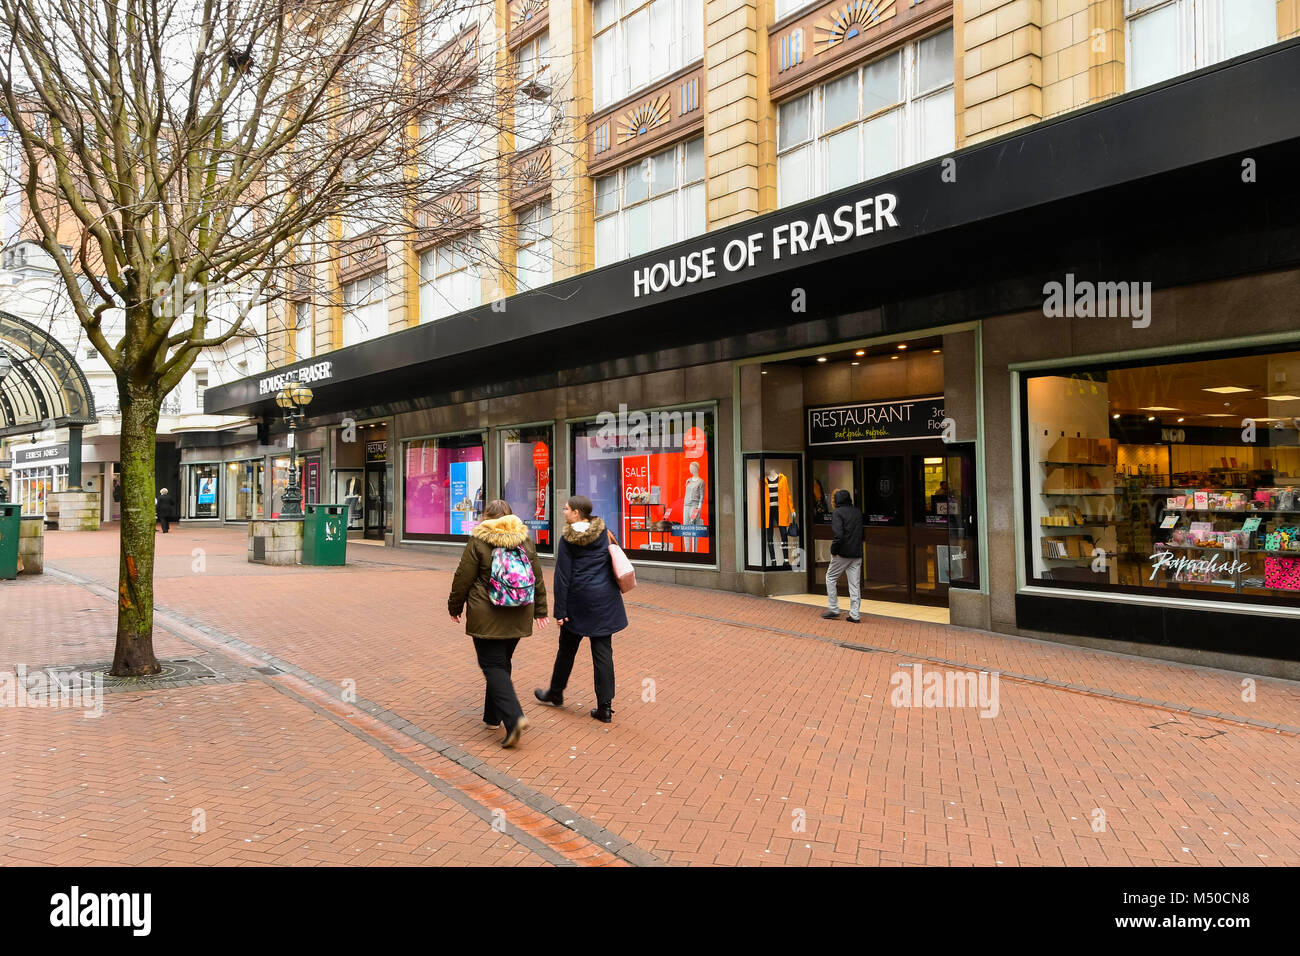 Fashion bournemouth stock photos fashion bournemouth for Quality classic house of fraser